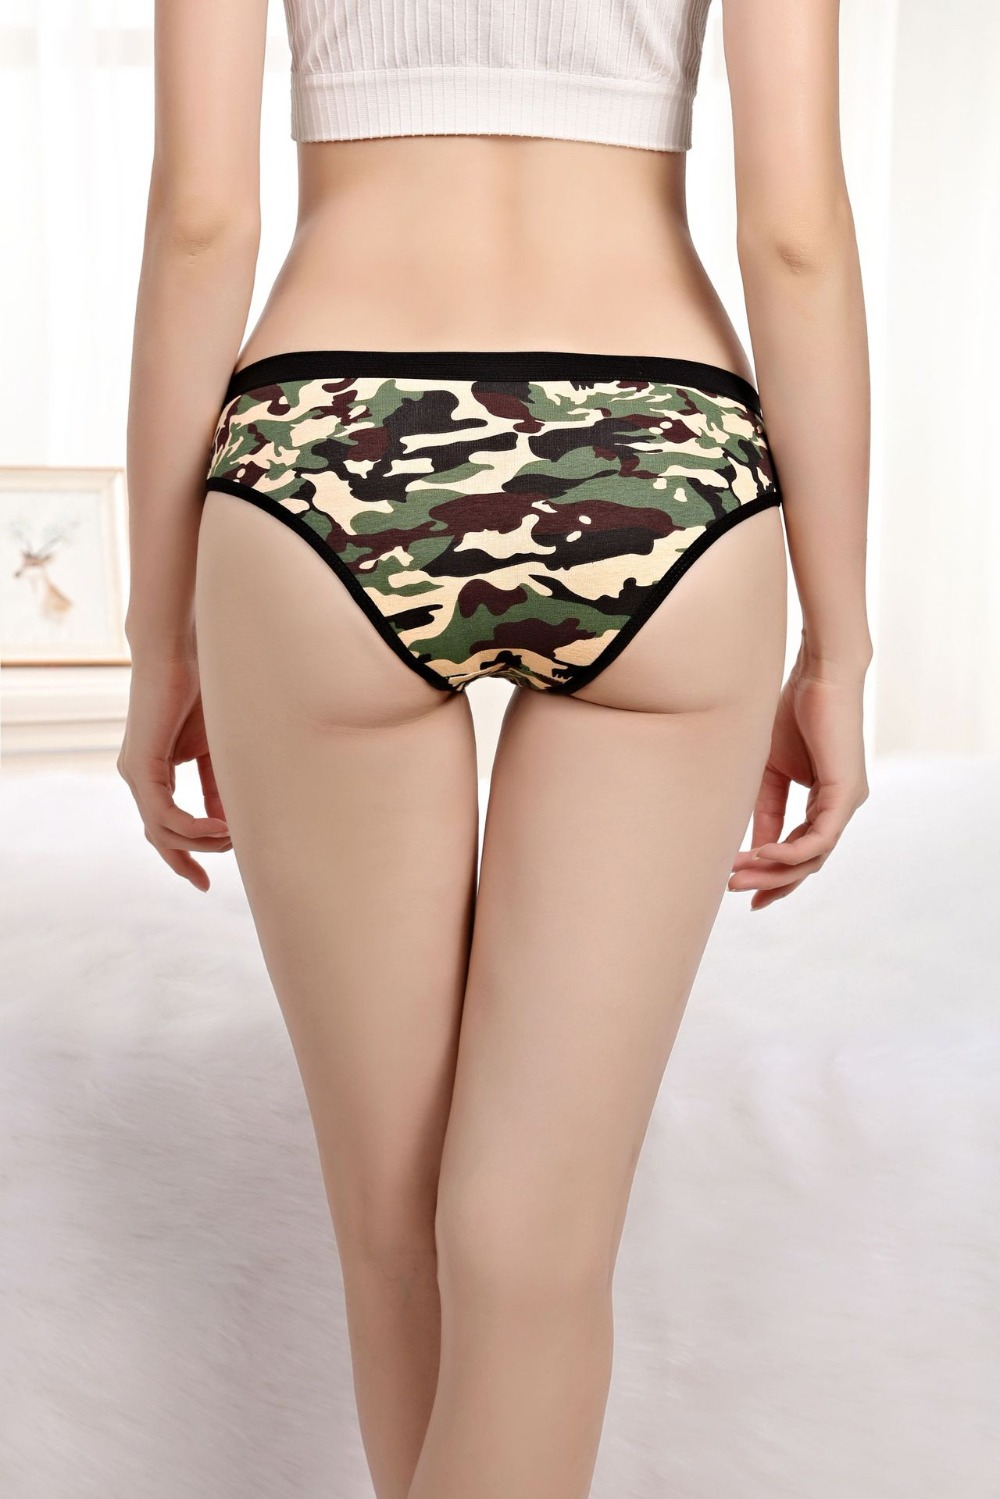 Hot sell 5pcs/lot  Fashionable sexy camouflage print cotton girl underwear spot women's briefs lady panties 89265